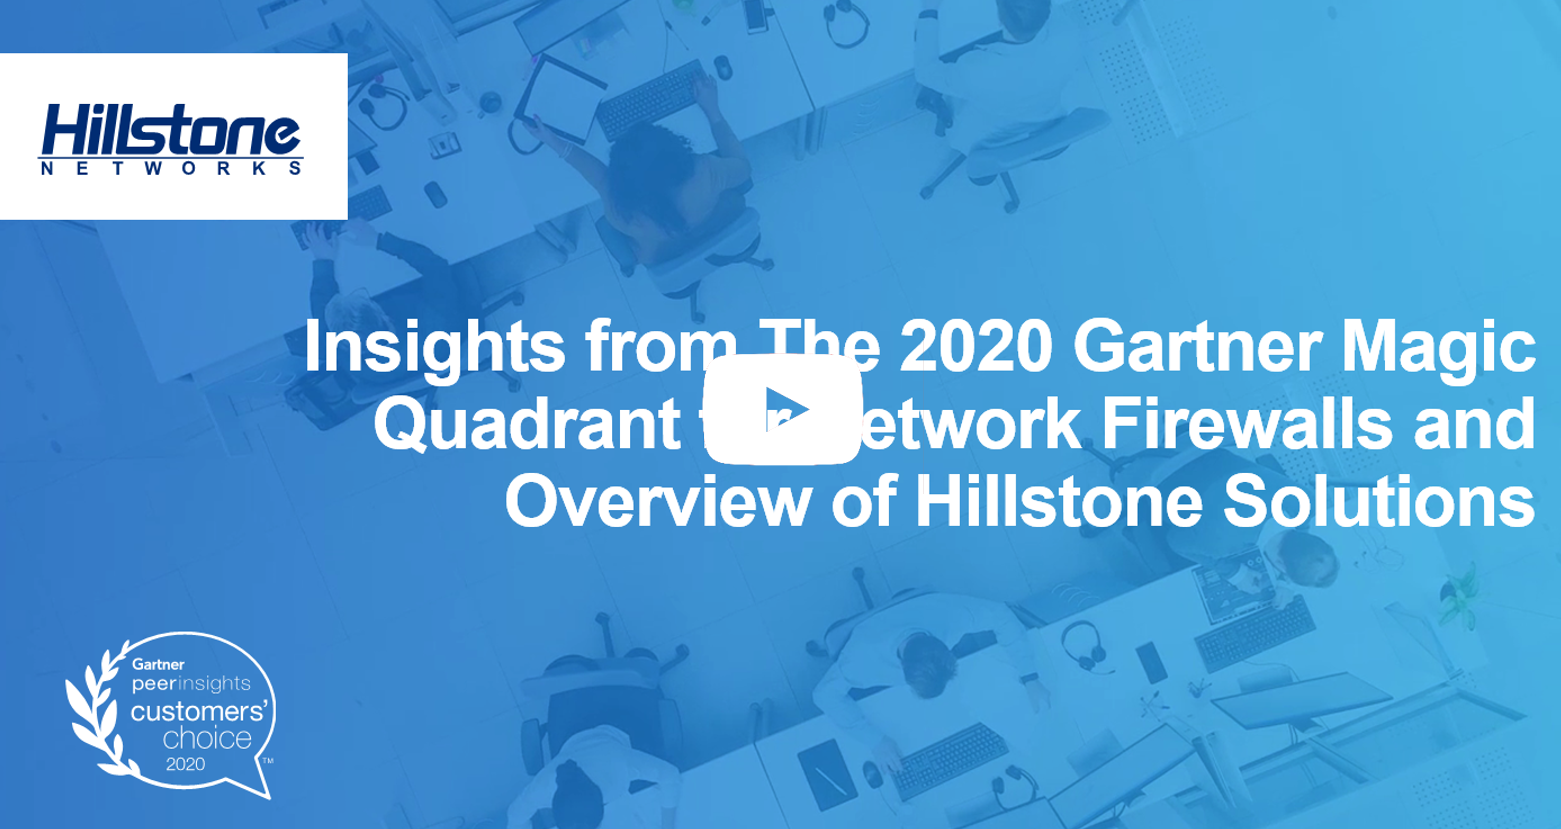 Watch On-demand Webinar: Insights from The 2020 Gartner Magic Quadrant for Network Firewalls and Overview of Hillstone Solutions